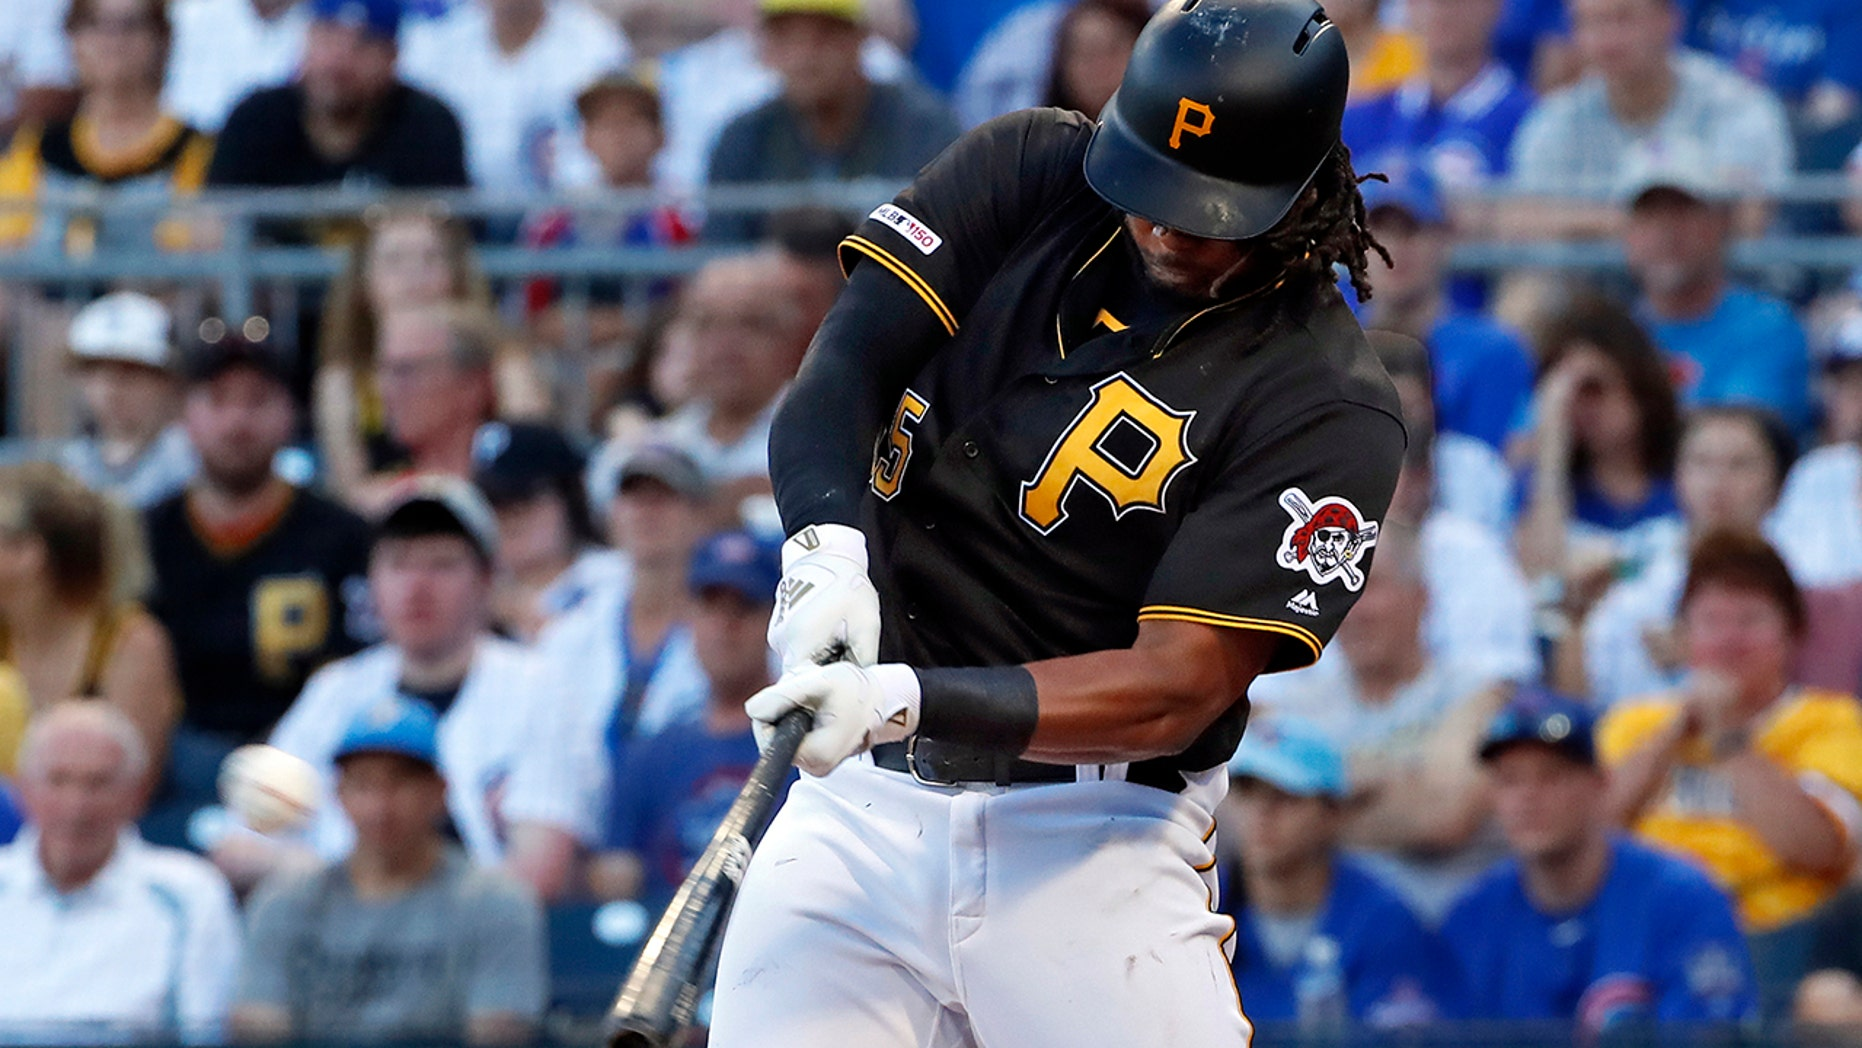 FILE - In this Jul 1, 2019, record photo, Pittsburgh Pirates' Josh Bell hits a three-run home run off Chicago Cubs starting pitcher Adbert Alzolay during a initial inning of a ball diversion in Pittsburgh. Bell is among 8 competitors in this year's All-Star Game Home Run Derby, that is handing out a $1 million esteem to a winner. (AP Photo/Gene J. Puskar, File)